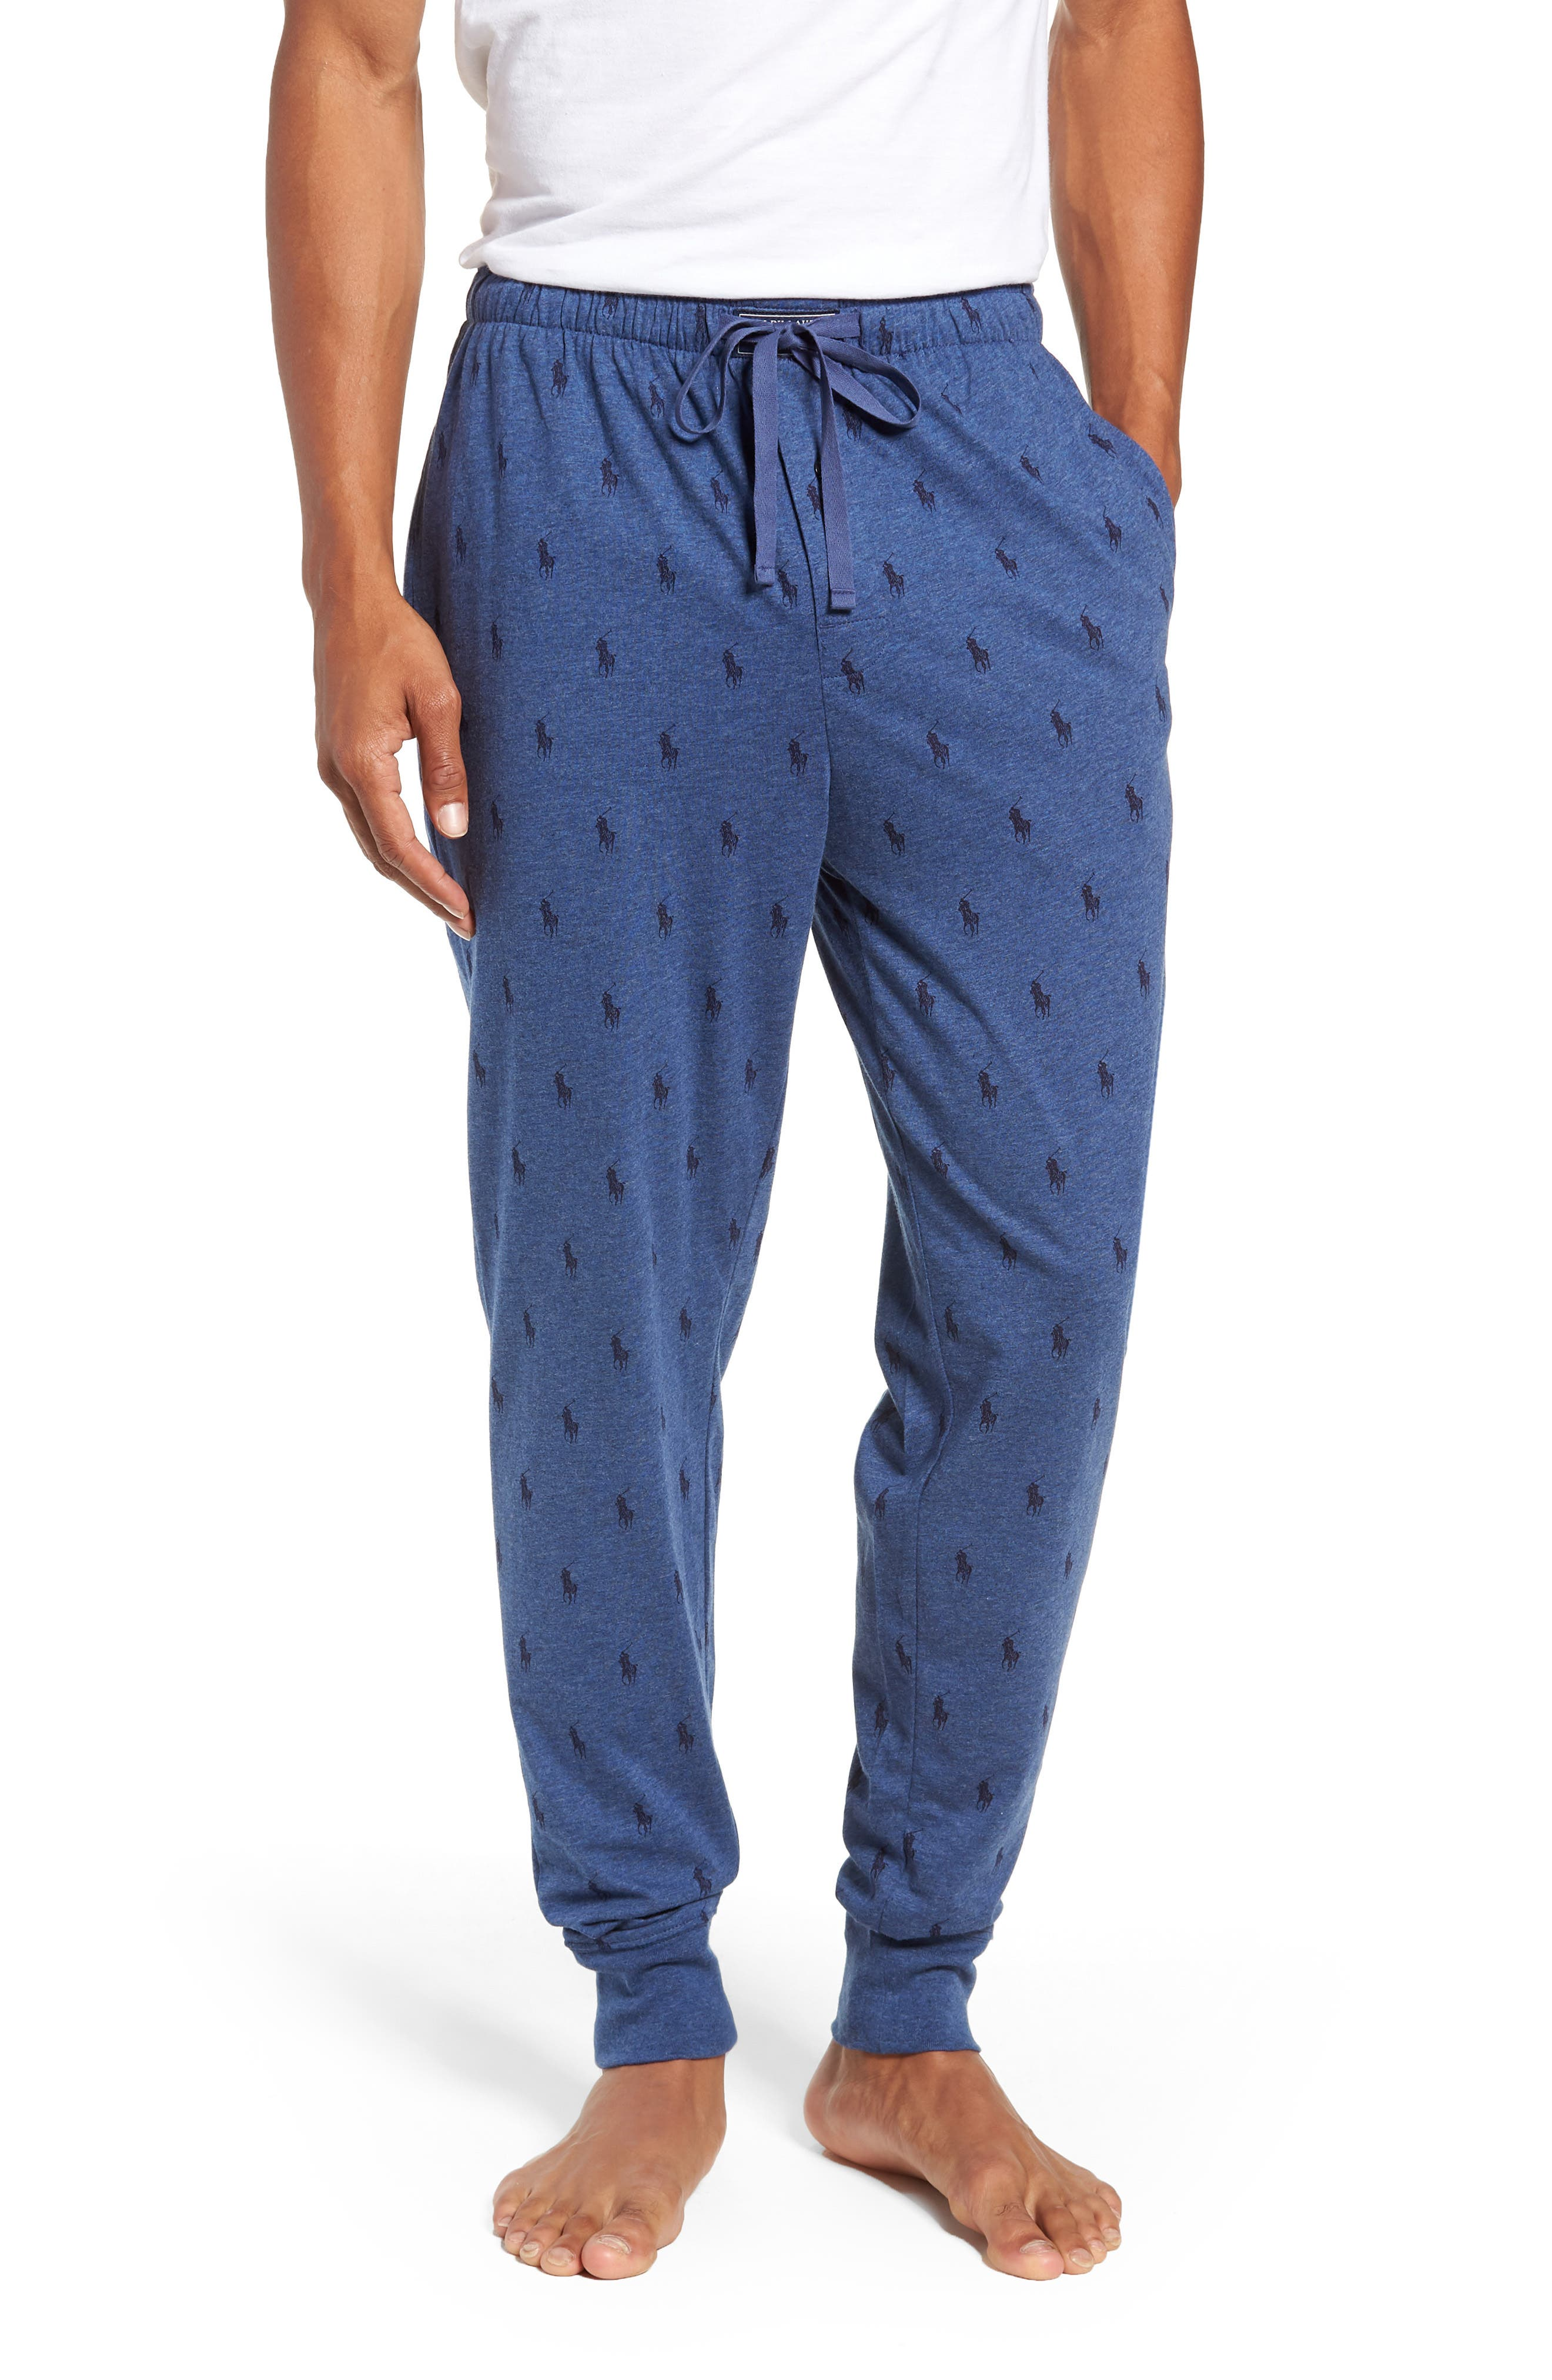 Cotton Pajama Pants,                         Main,                         color, 403